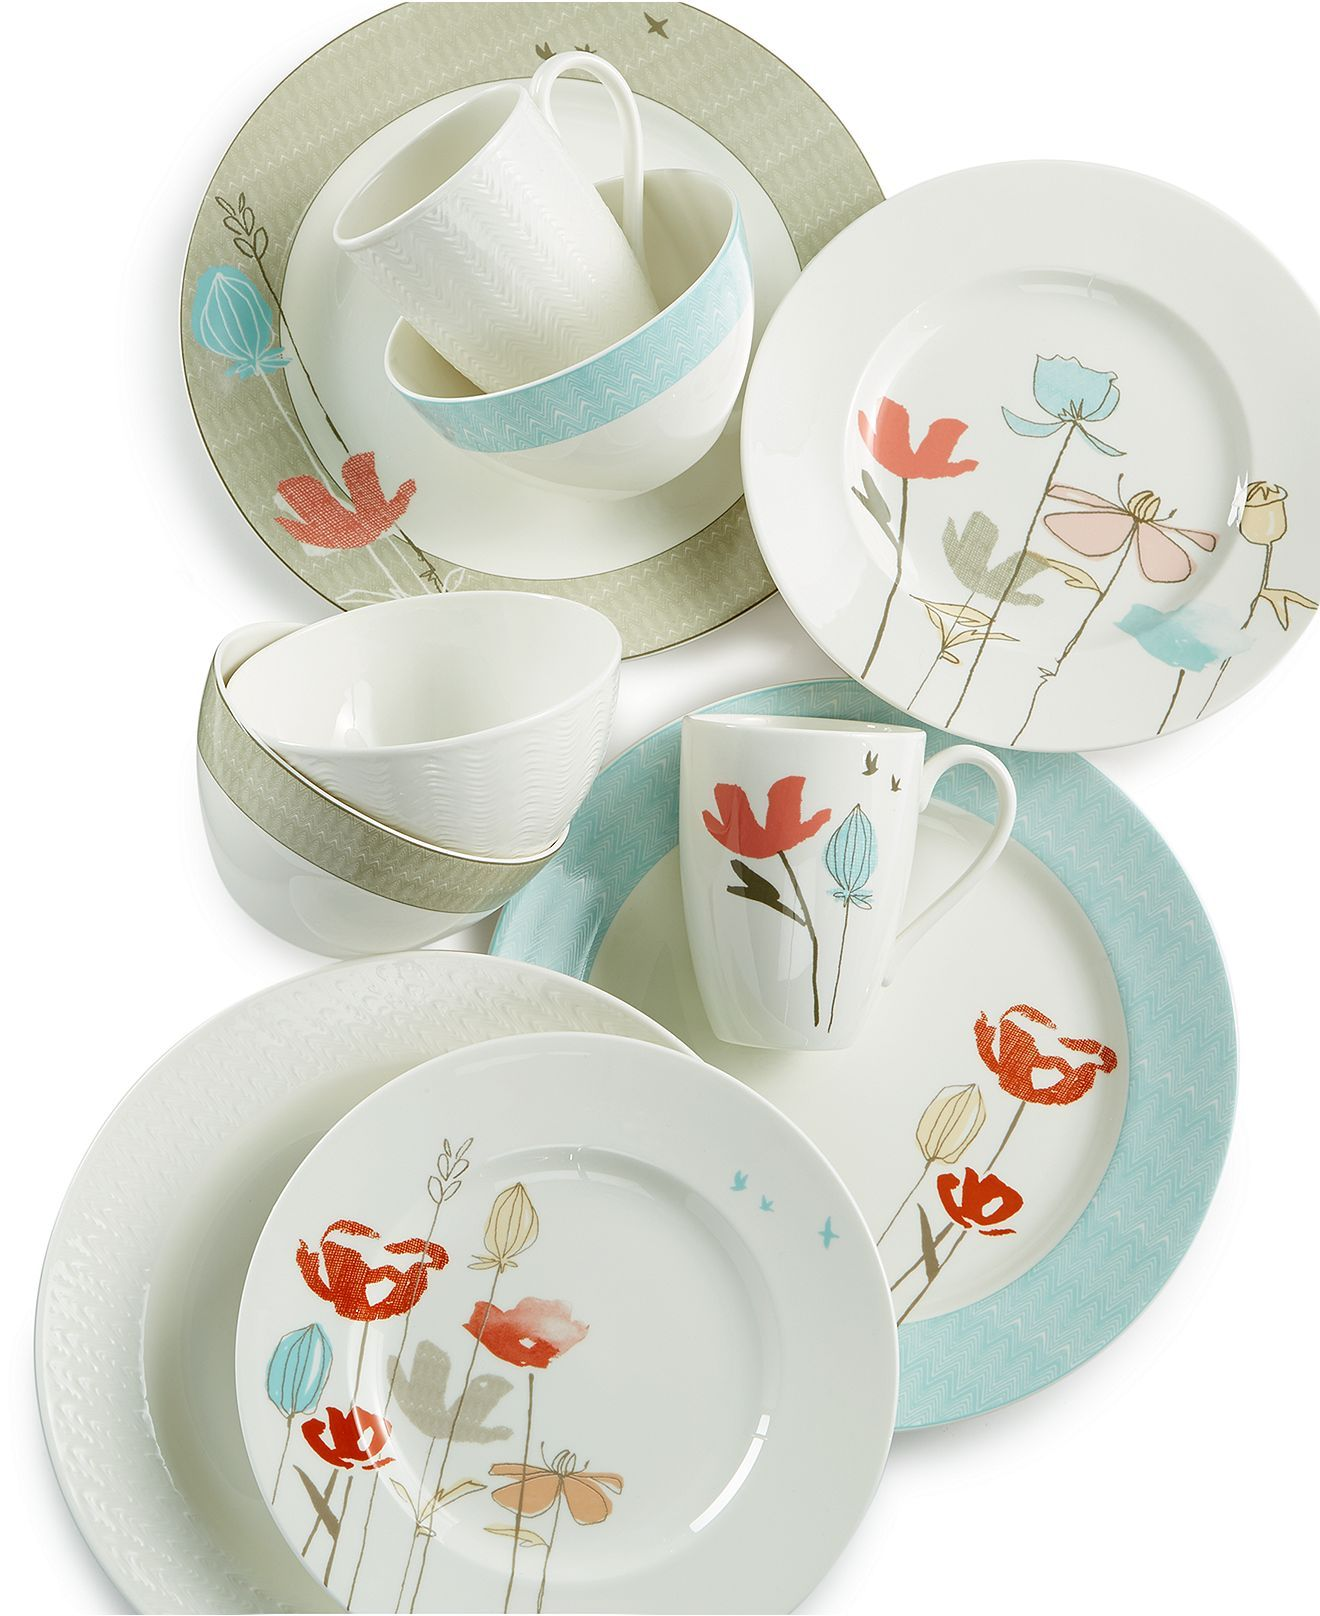 Lenox Poppy and Ridge Street Mix and Match Collection - Casual Dinnerware - Dining u0026 Entertaining  sc 1 st  Pinterest & Lenox Poppy and Ridge Street Mix and Match Collection - Casual ...